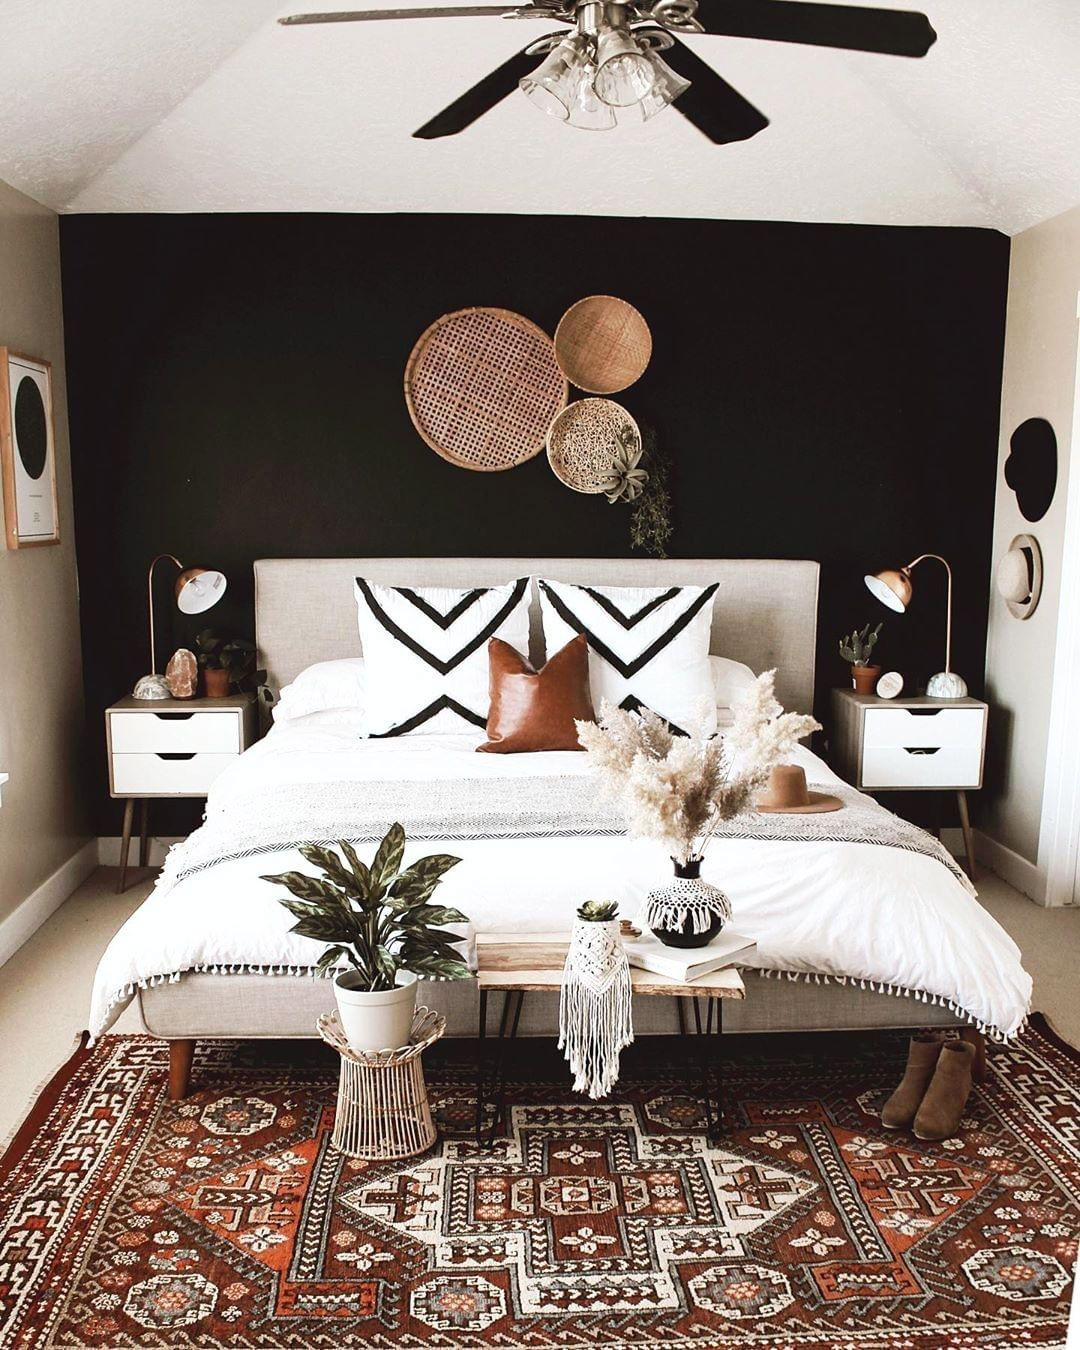 17 Best Home Decor Ideas For Living Room On A Budget Home Decor Bedroom Black Walls Bedroom Bedroom Interior